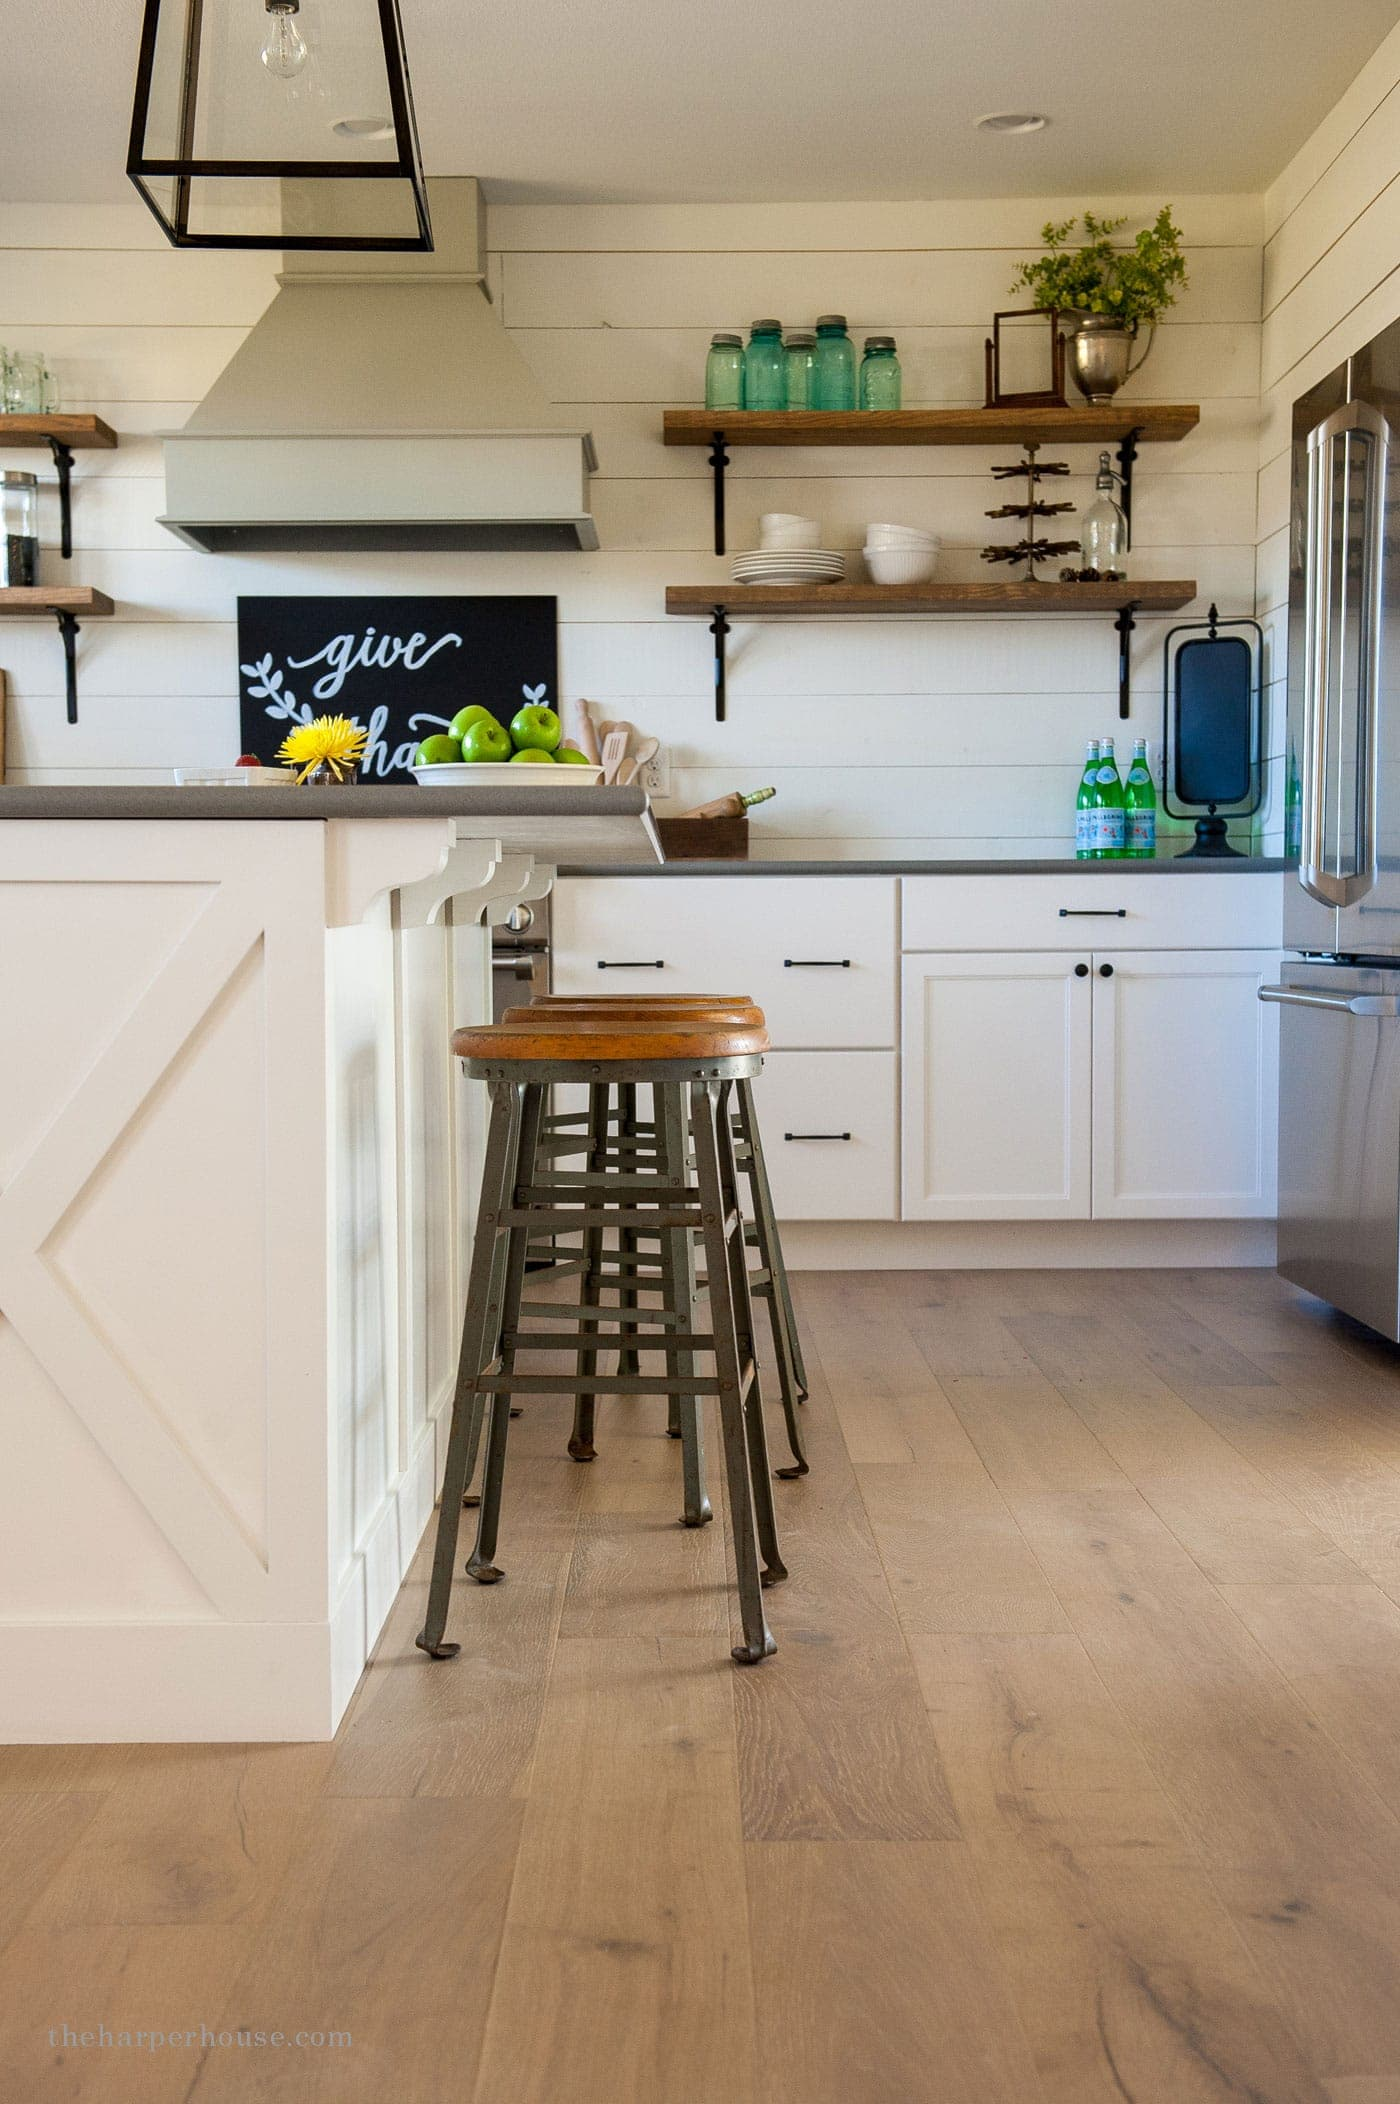 diy island upgrade with $5 wooden corbels | farmhouse kitchen reveal www.theharperhouse.com